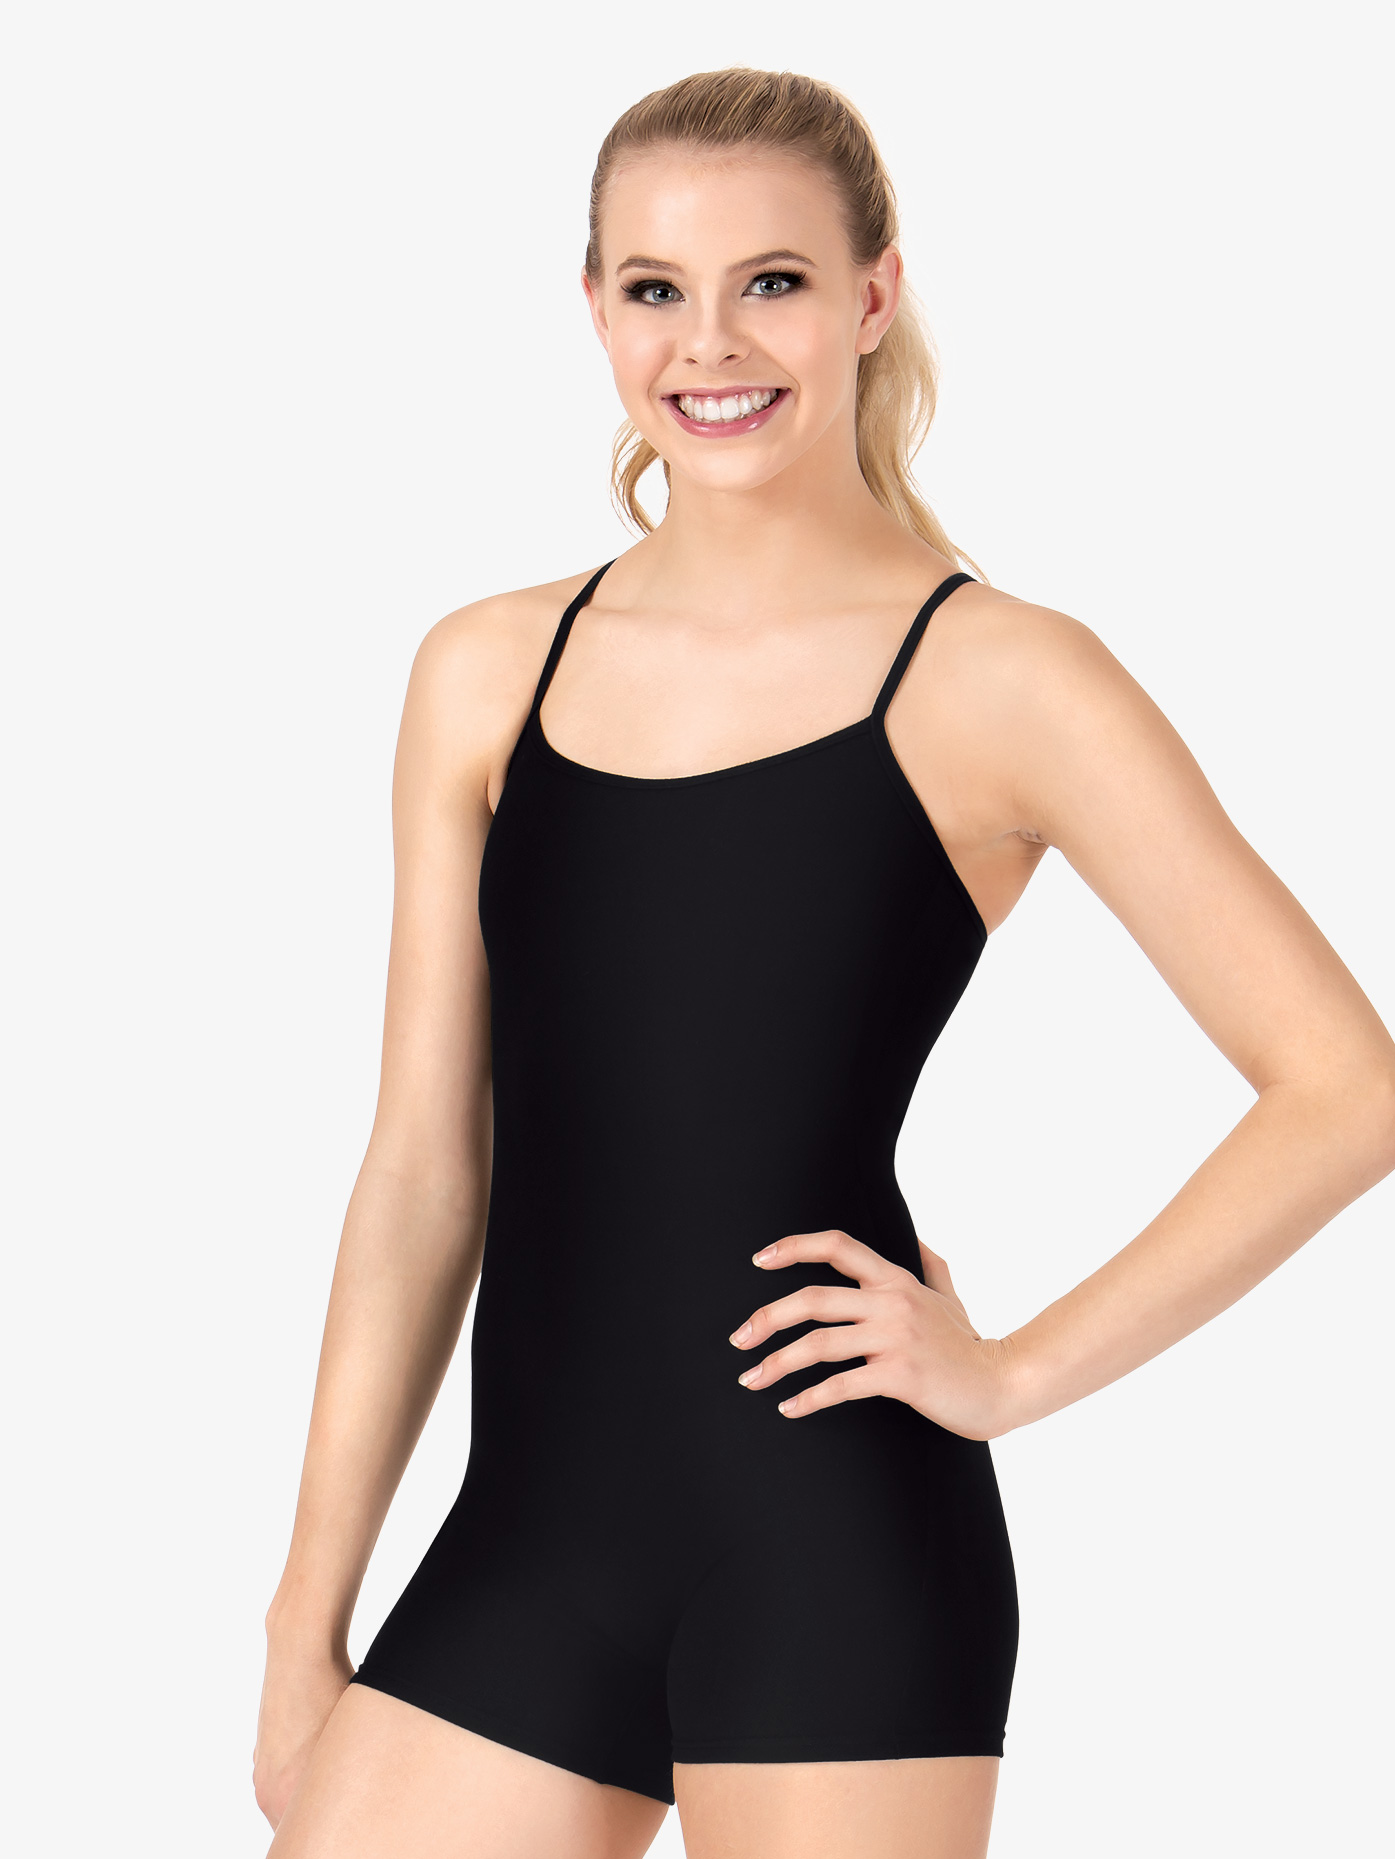 Body Wrappers Y-Back Camisole Shorty Unitard 7322